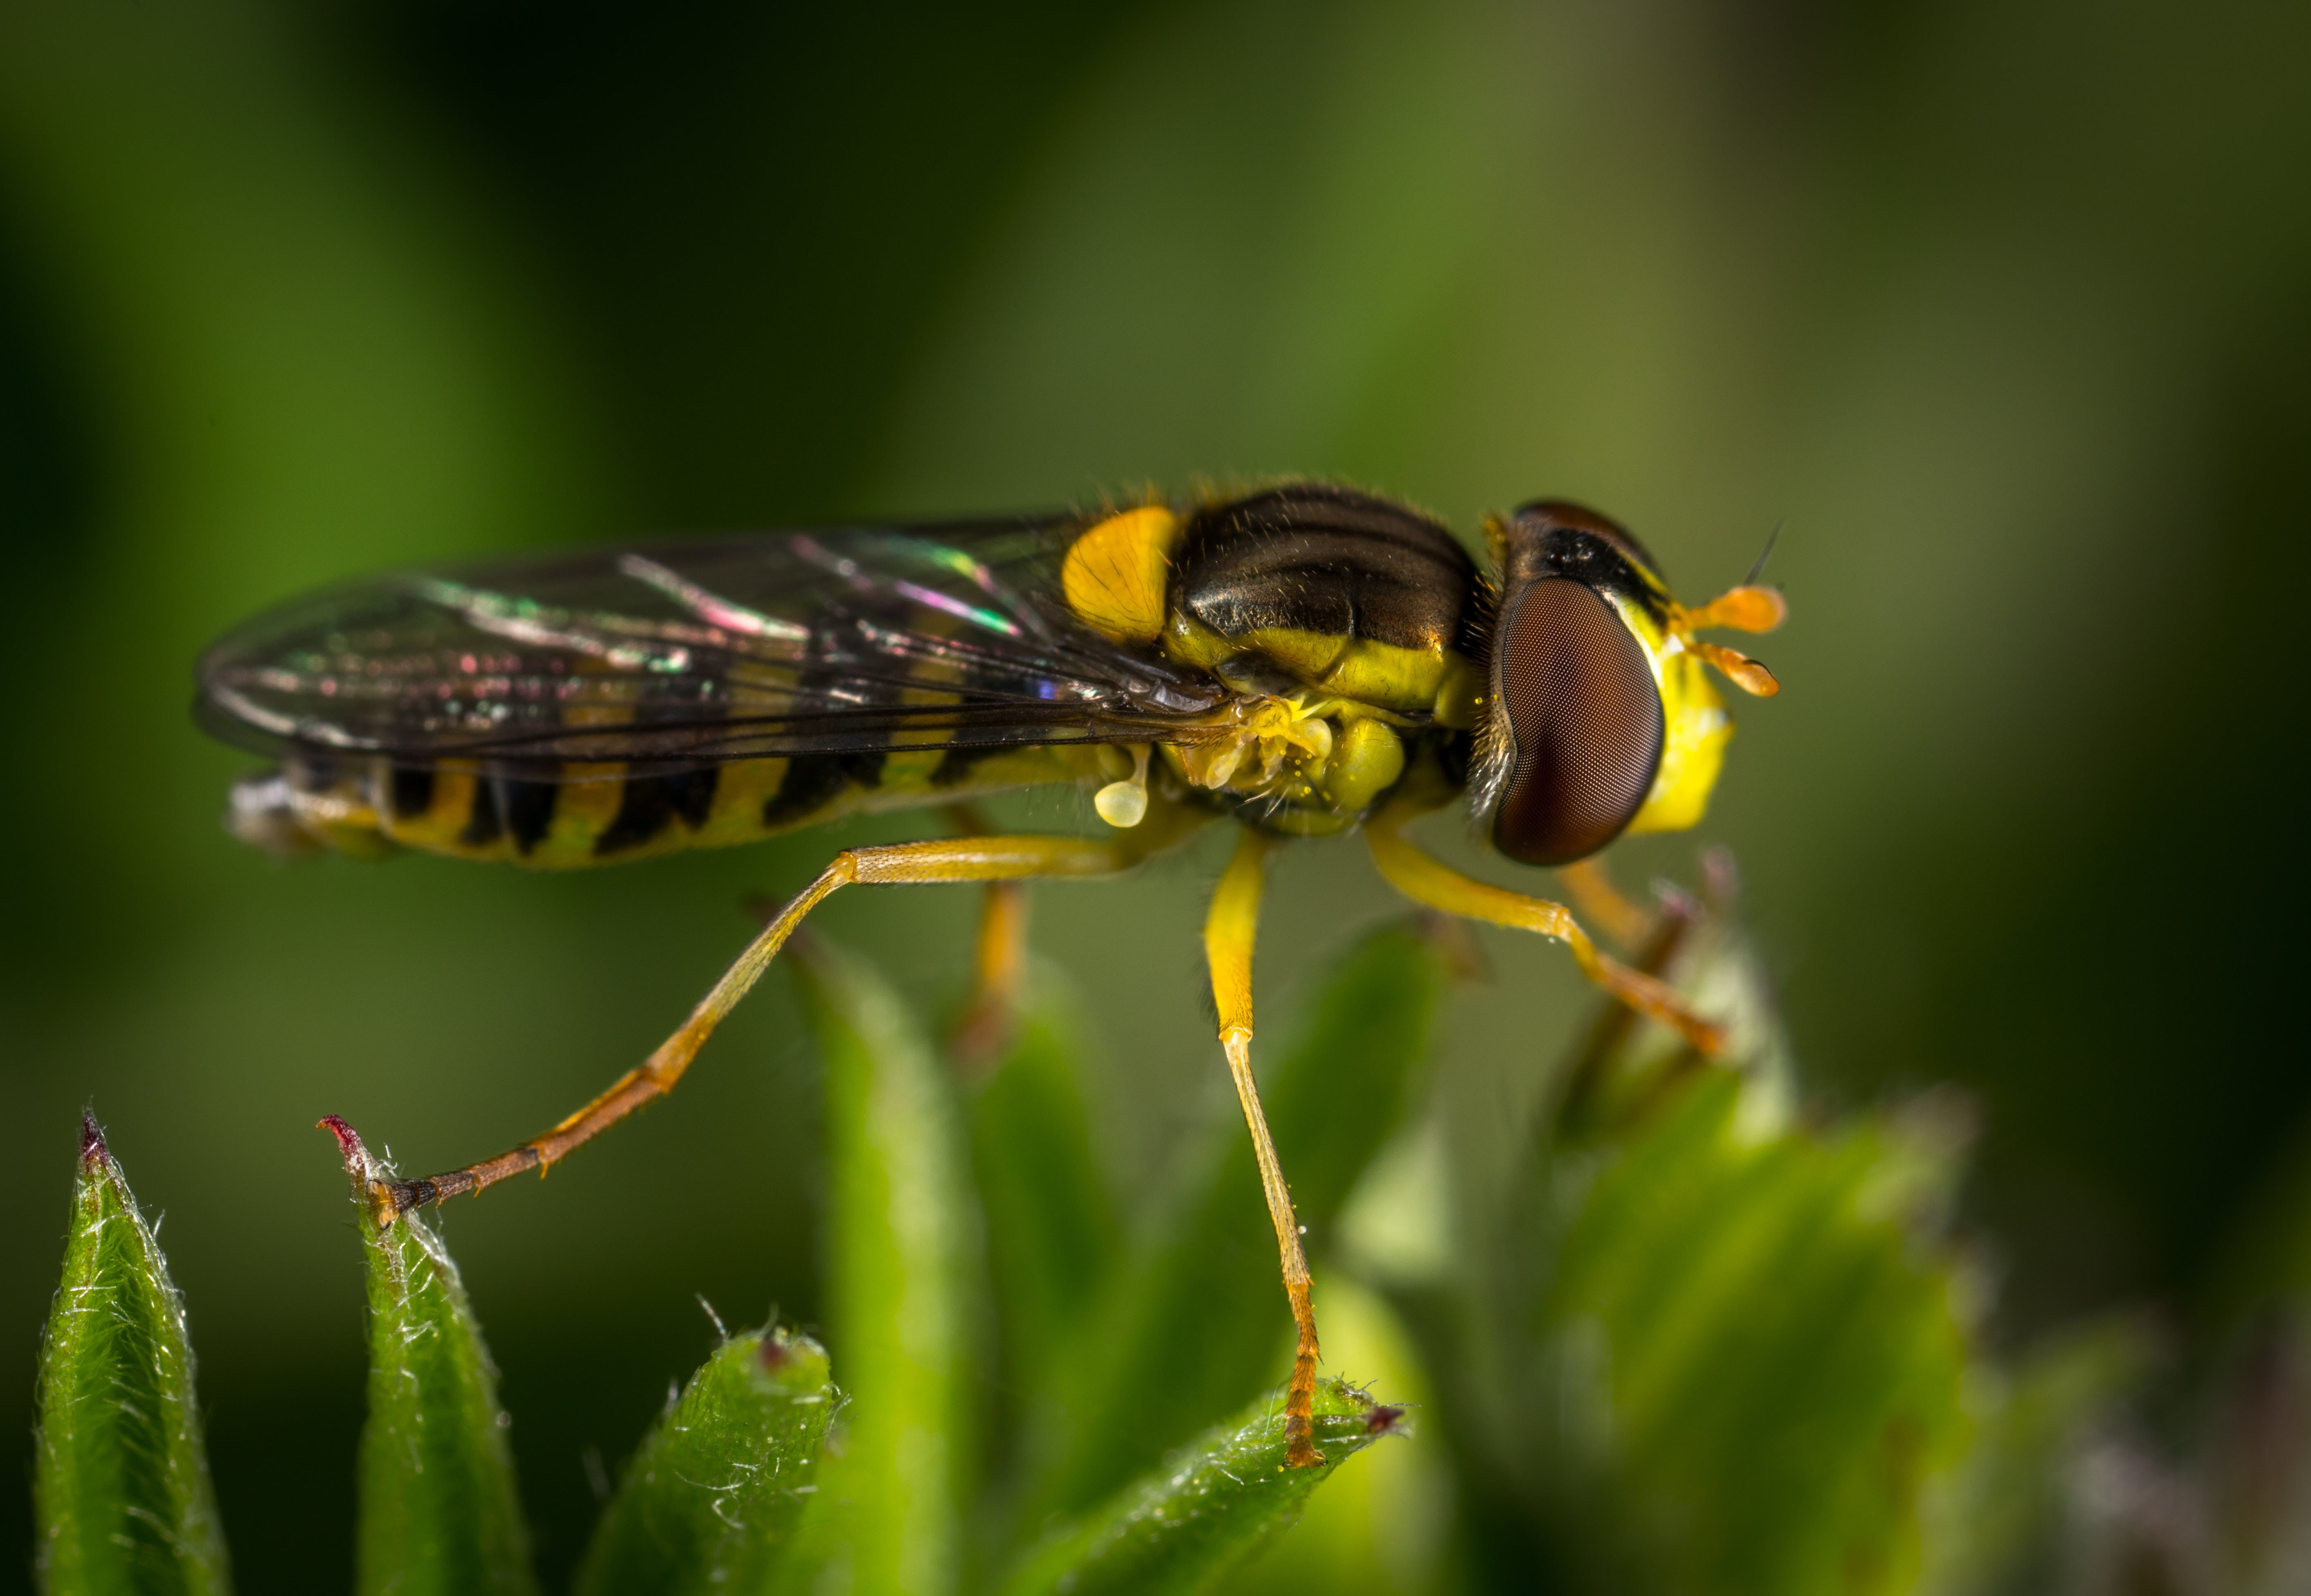 Black And Yellow Insect